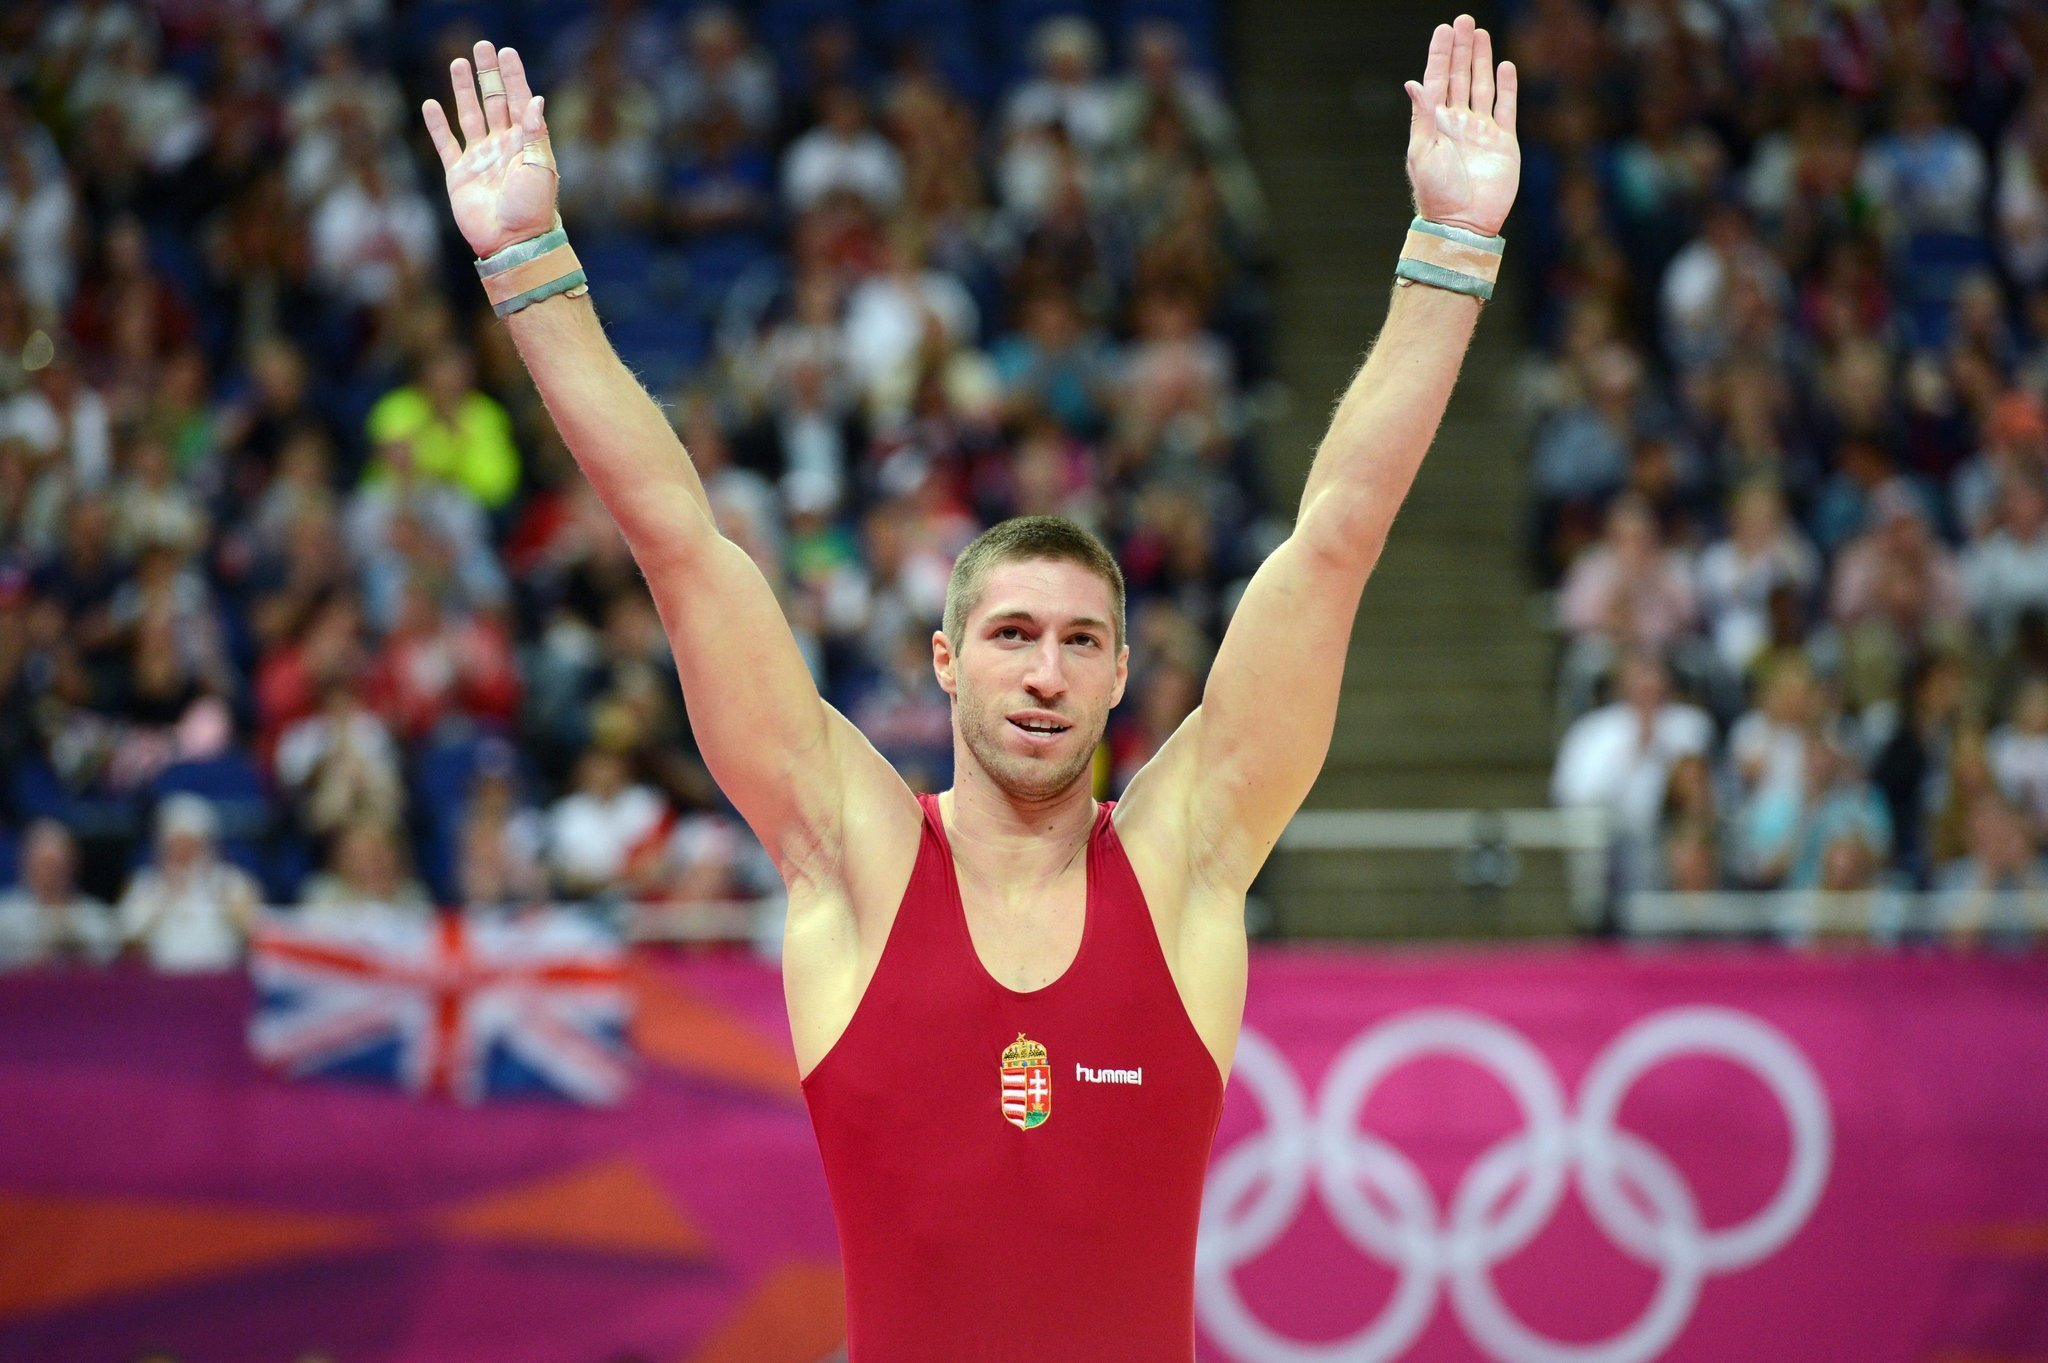 Gymnastics element was named after Hungarian Olympic Champion Krisztián Berki